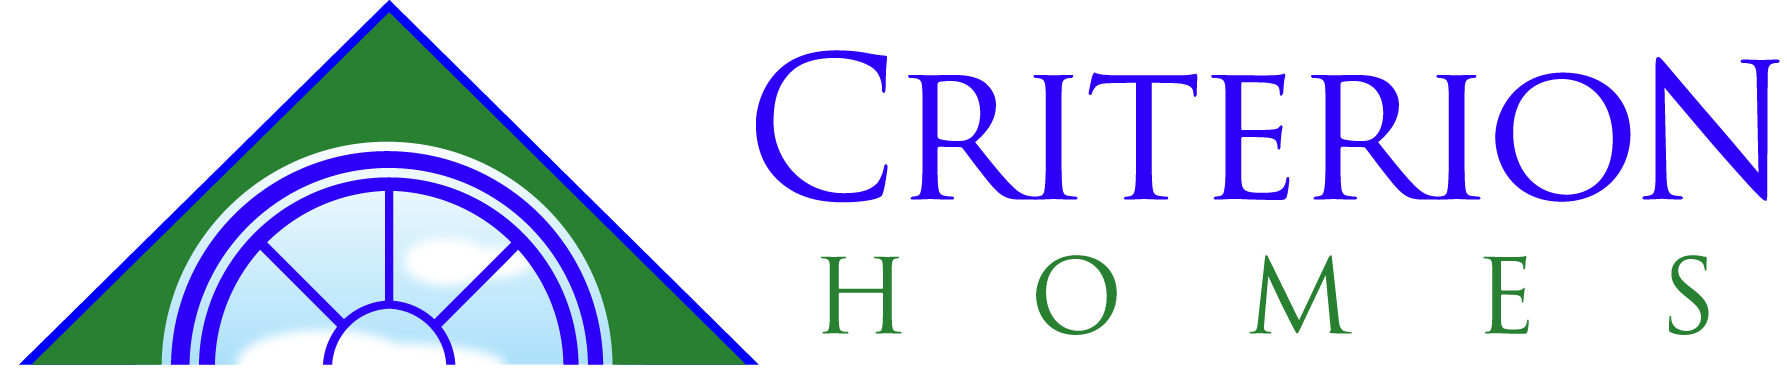 Criterion Homes, LLC